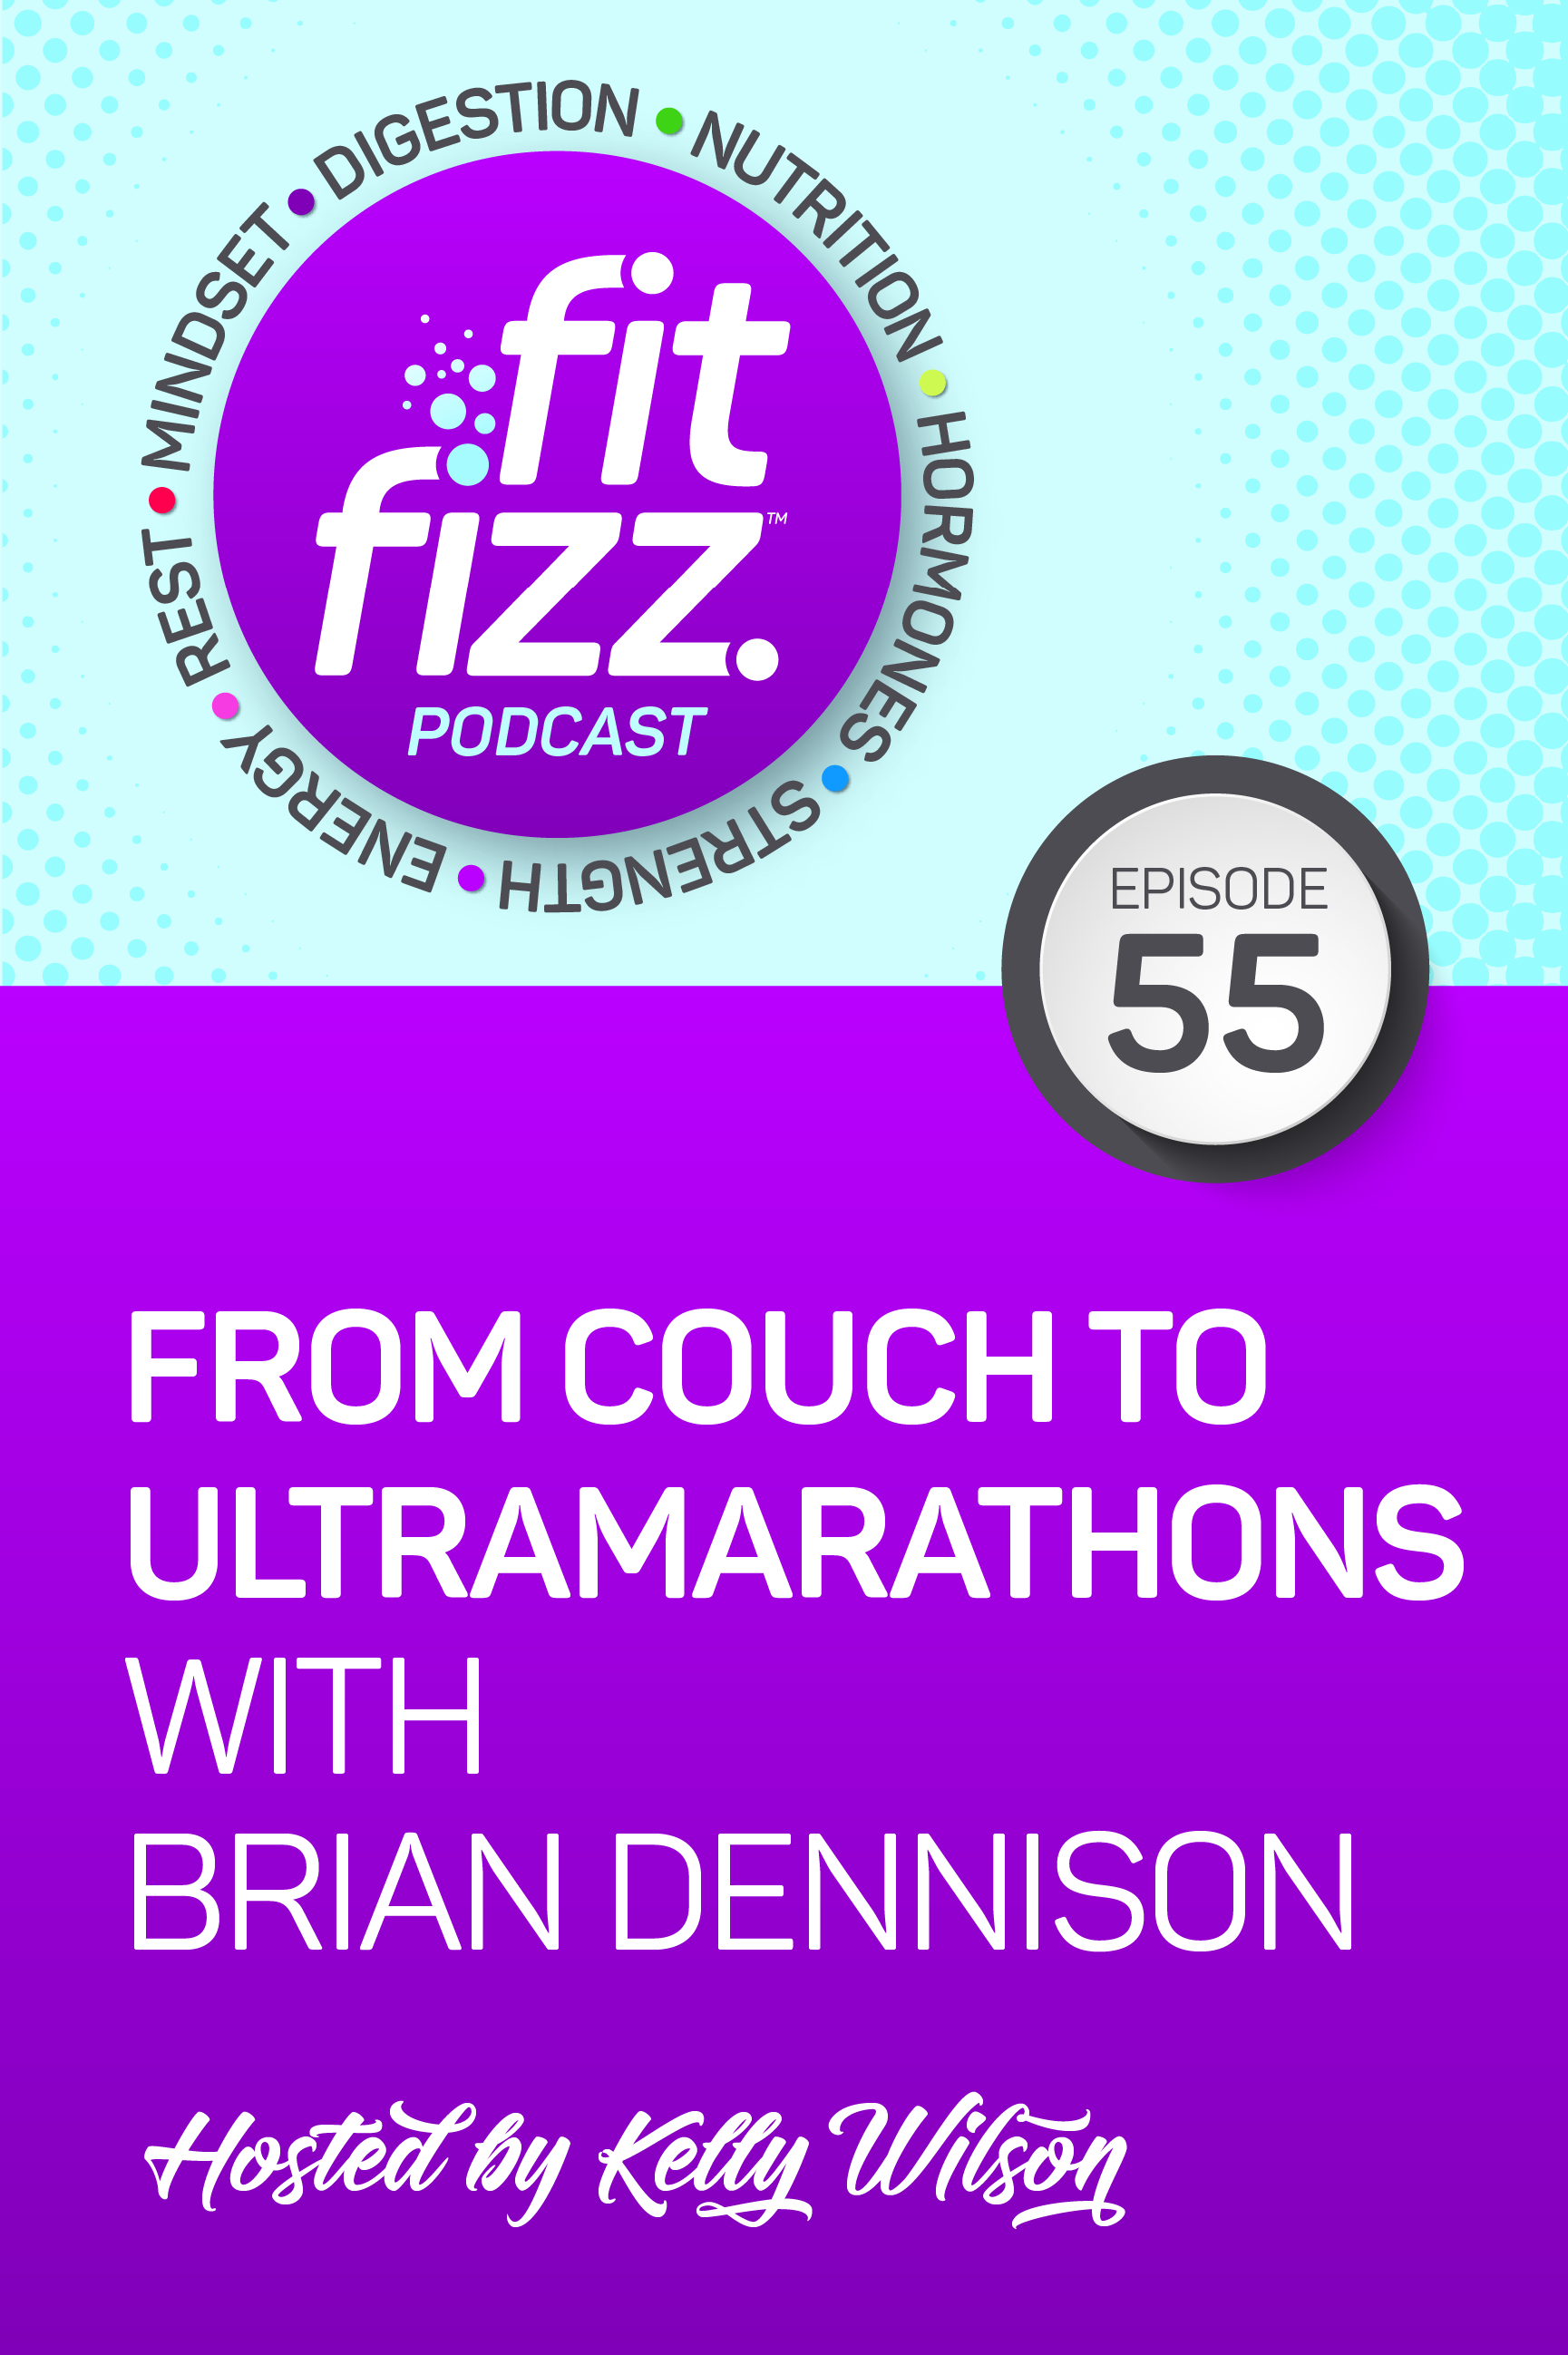 Ep. 55: From Couch to Ultramarathons with Brian Dennison